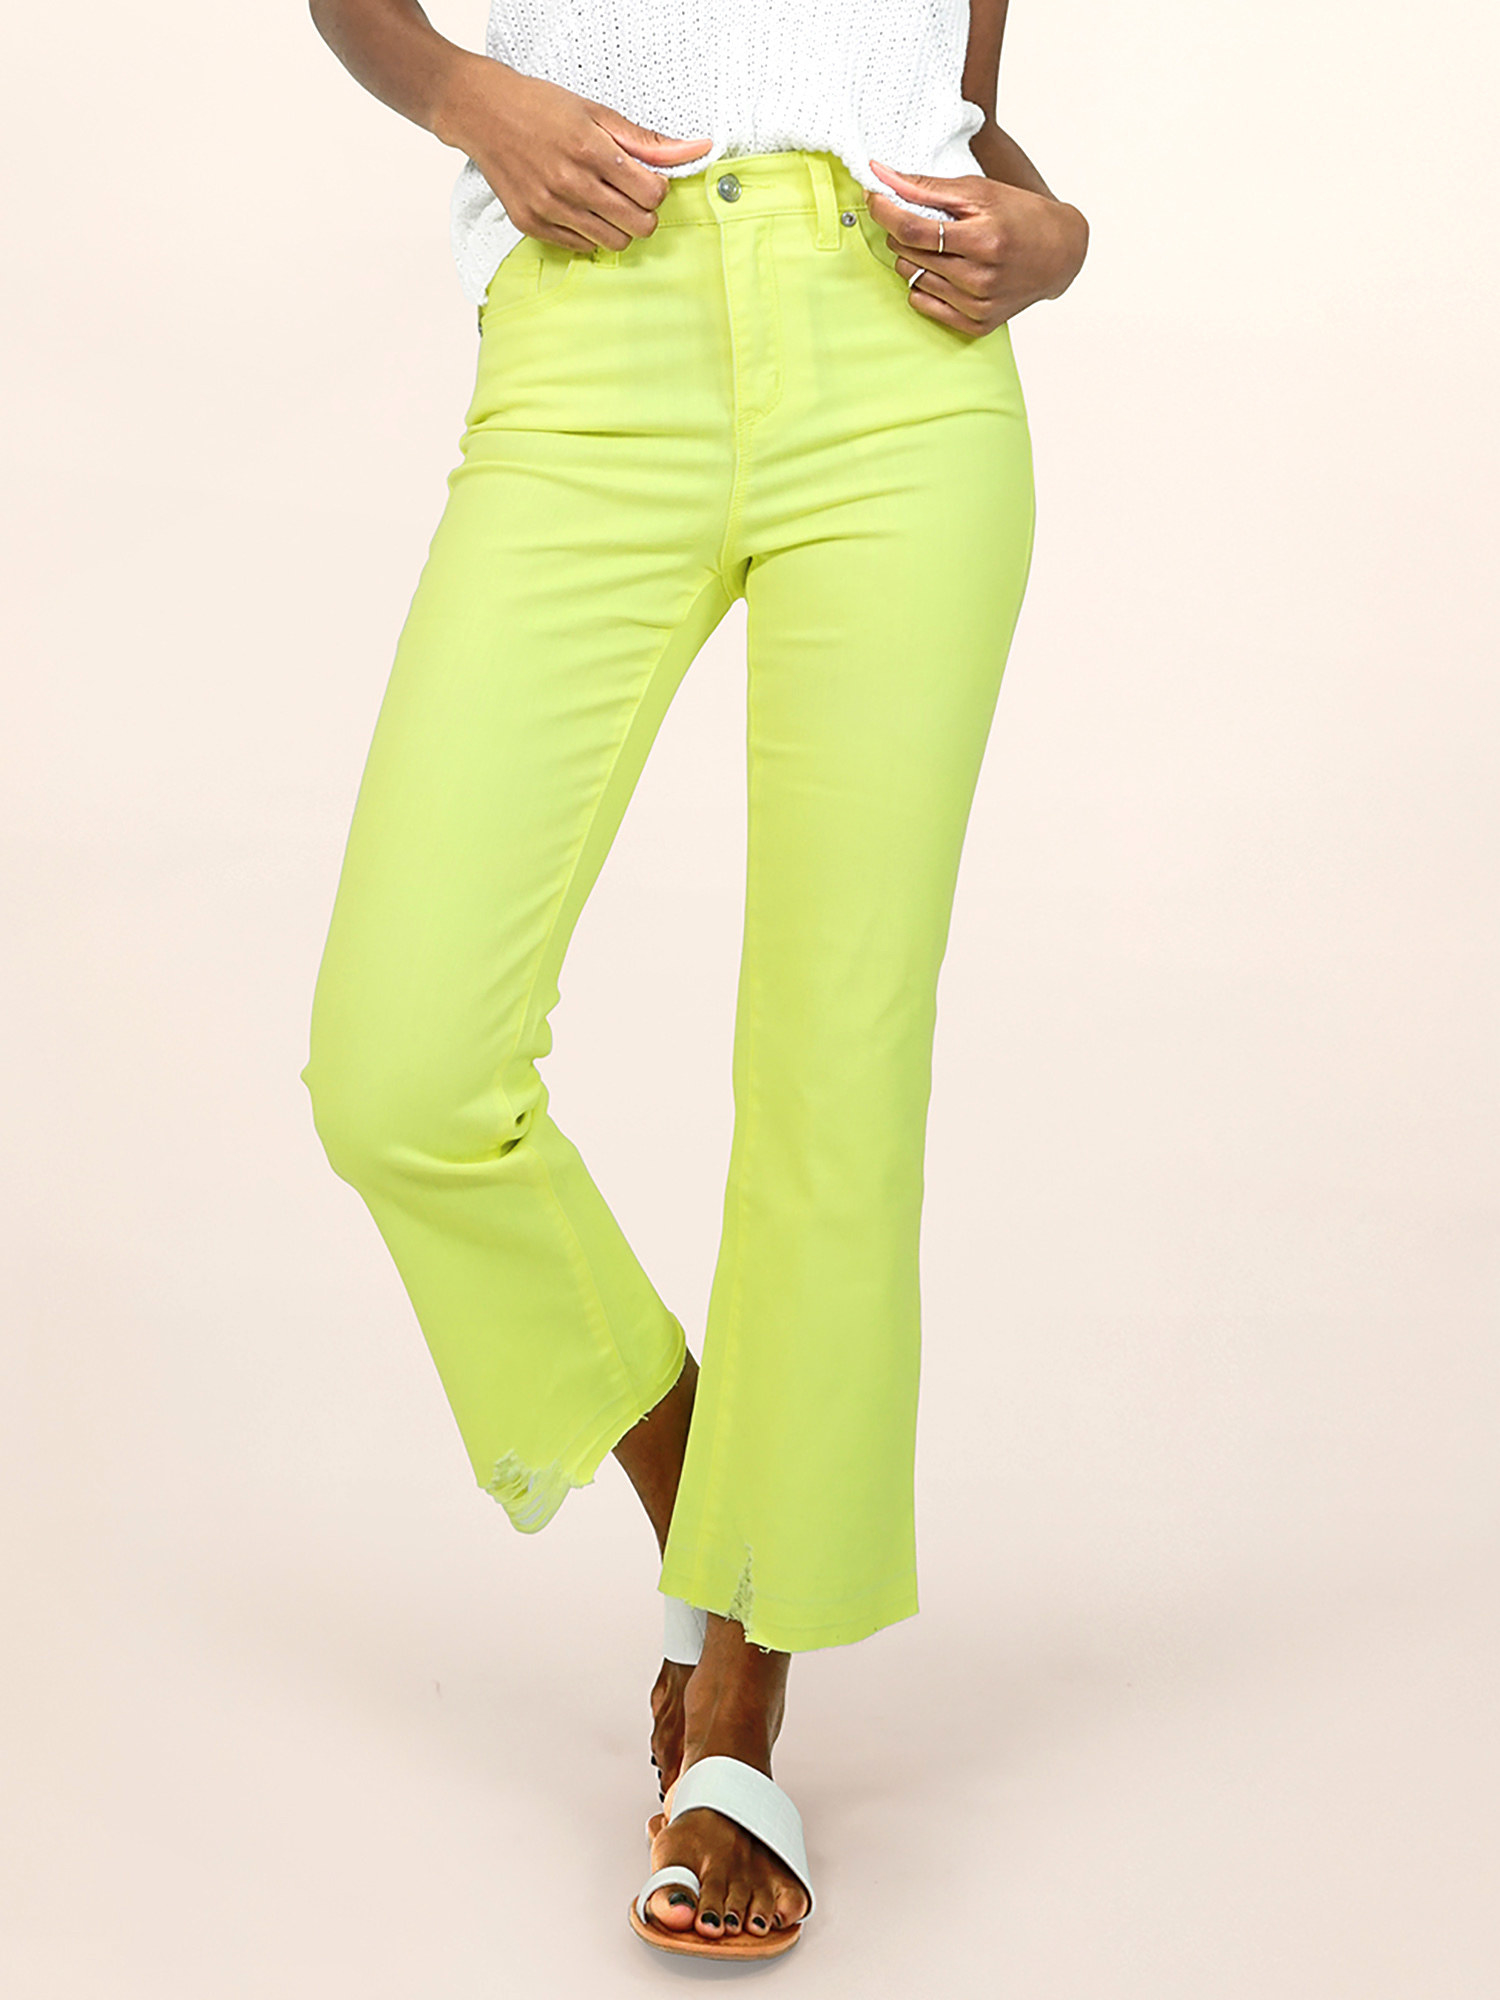 Model in neon yellow flare jeans